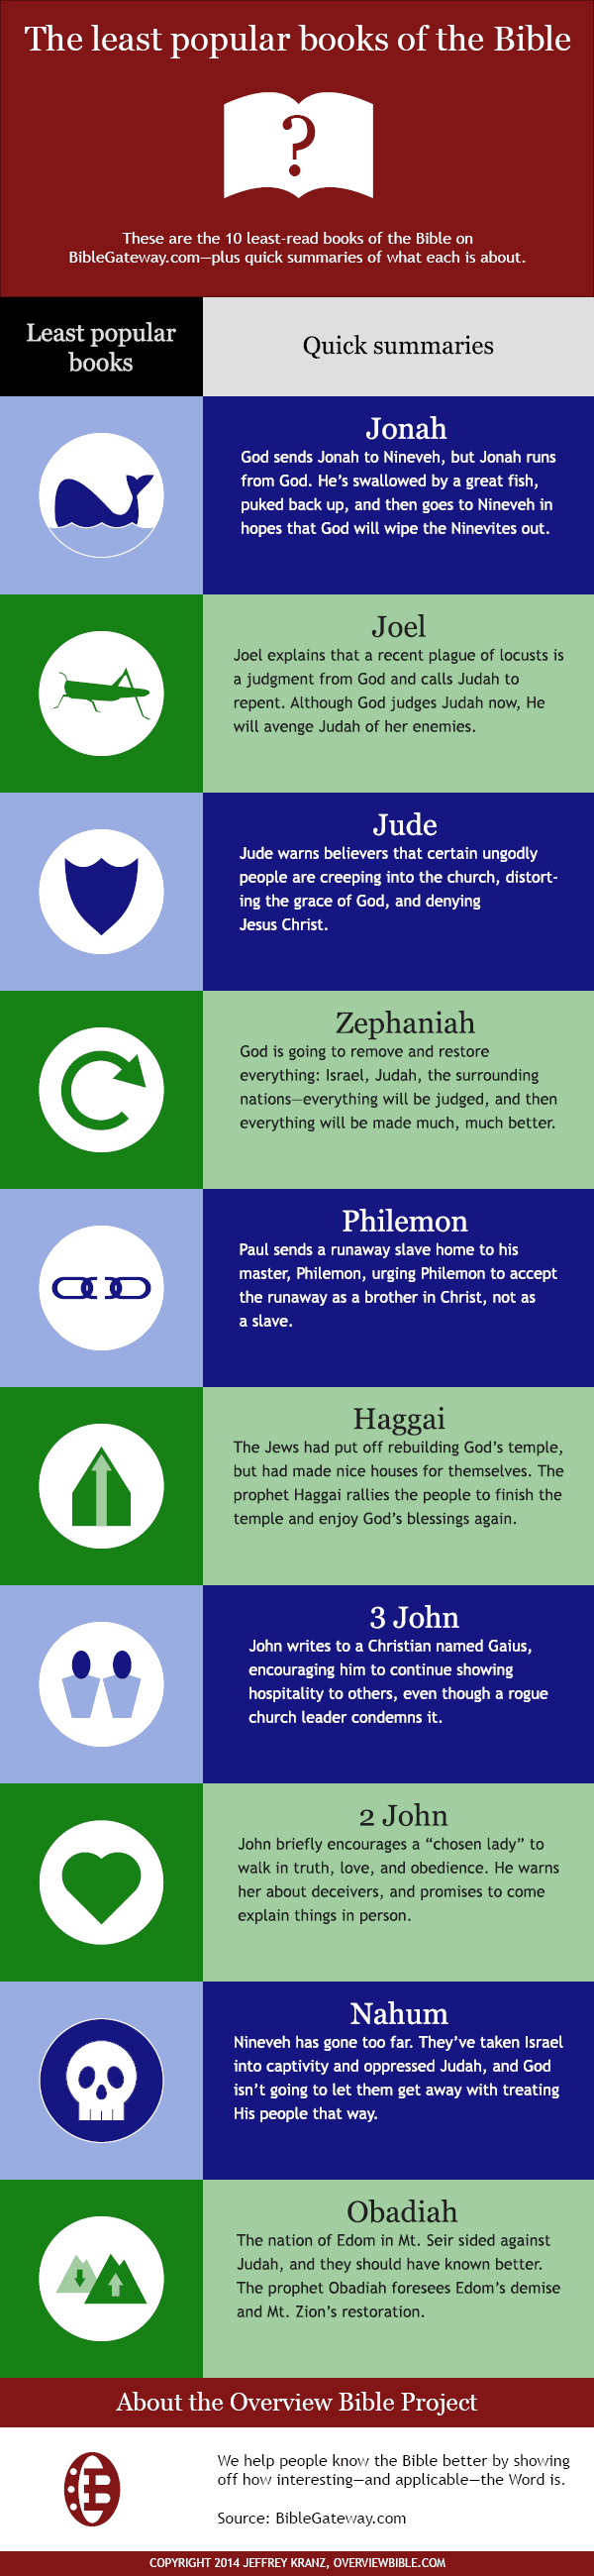 least-popular-books-of-the-bible.infographic.png.pagespeed.ce.Sd_VQ0NxZm